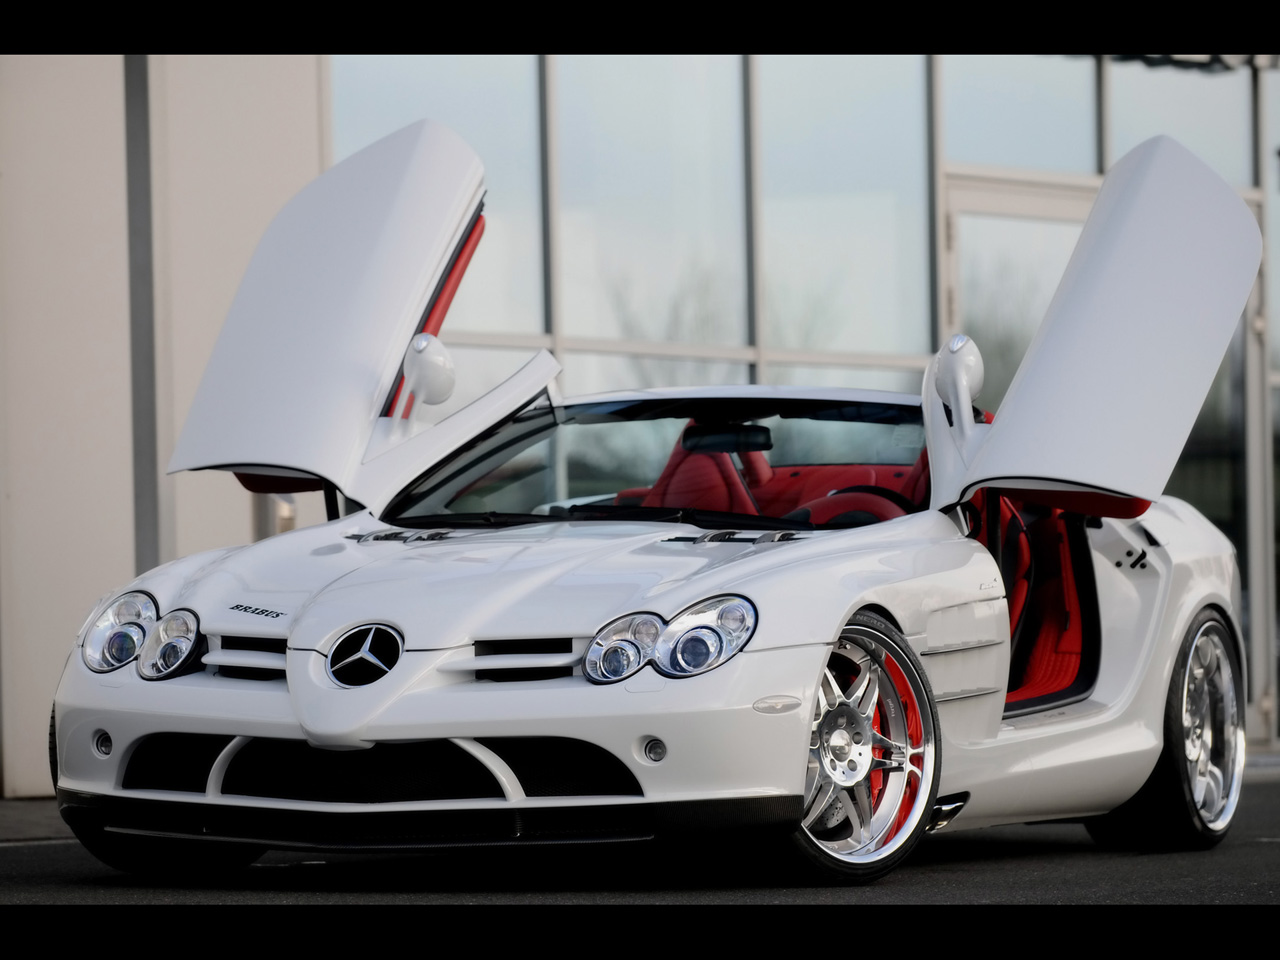 Mercedes slr mclaren world of cars for Autos mercedes benz